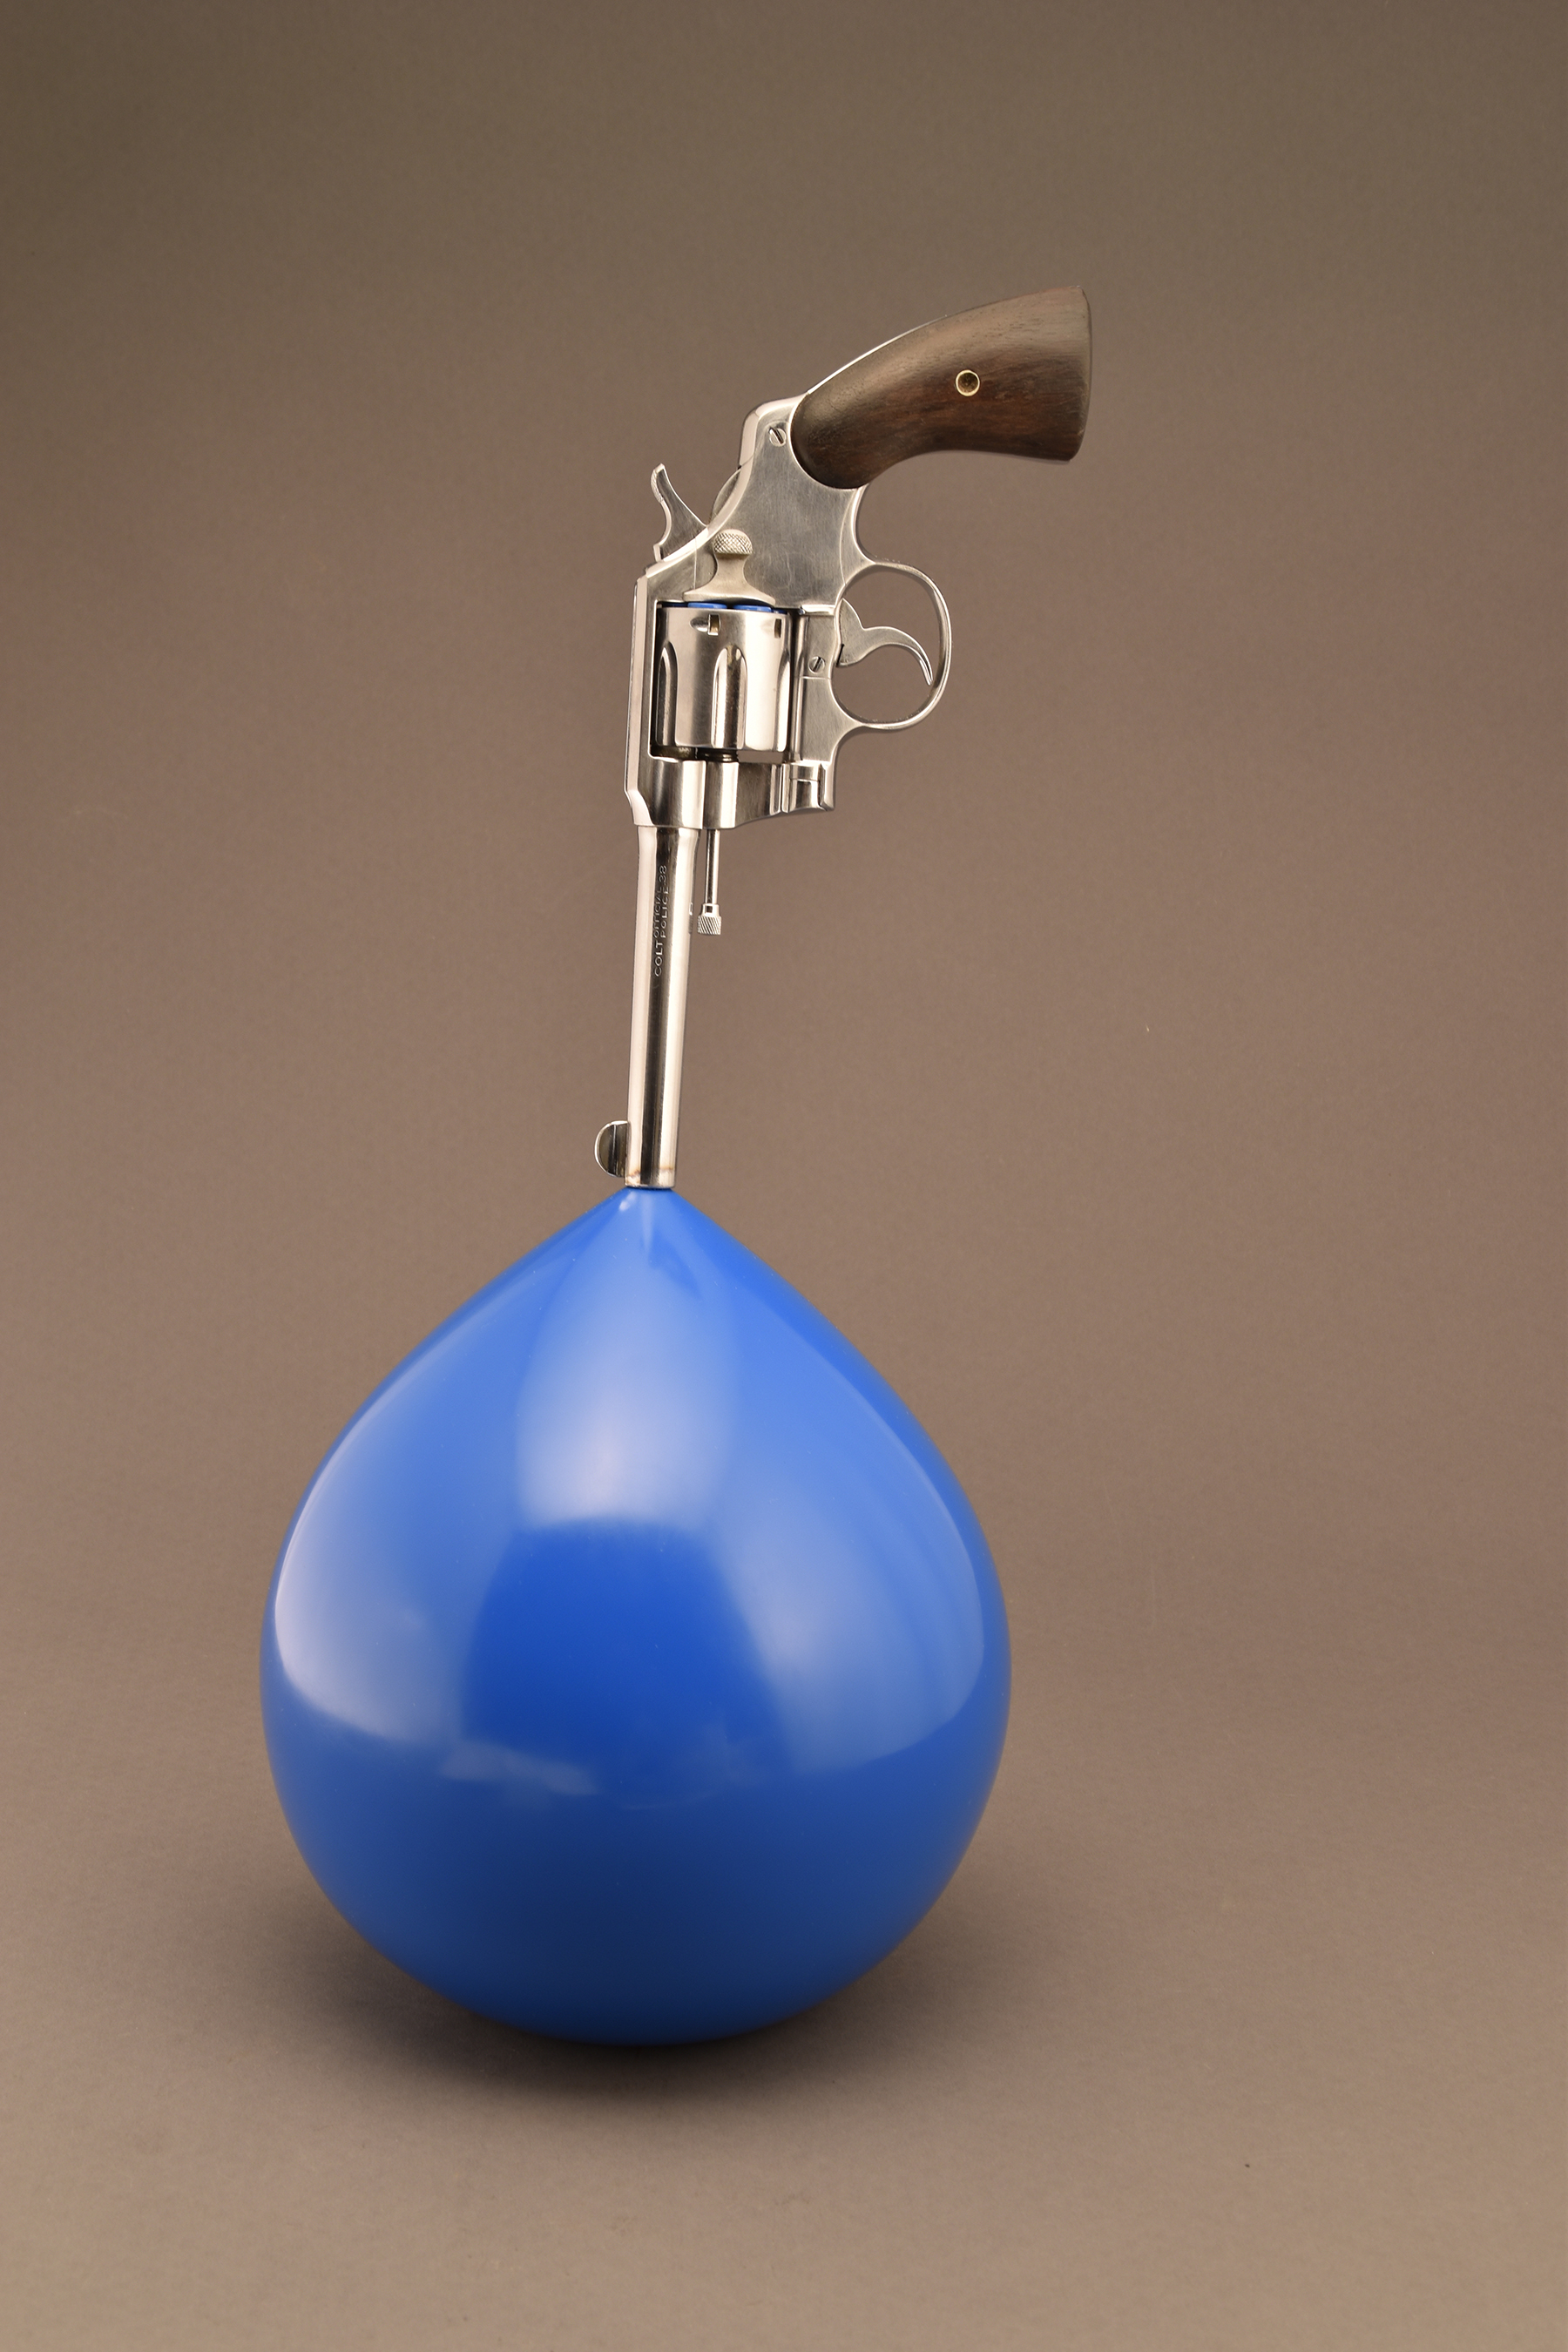 """Bubble Gun"" (handgun, steel, wood, chrome, enamel paint, plastic), hand-formed and fabricated using traditional metalsmithing and automotive/aircraft metal-shaping techniques, by Joe Muench"